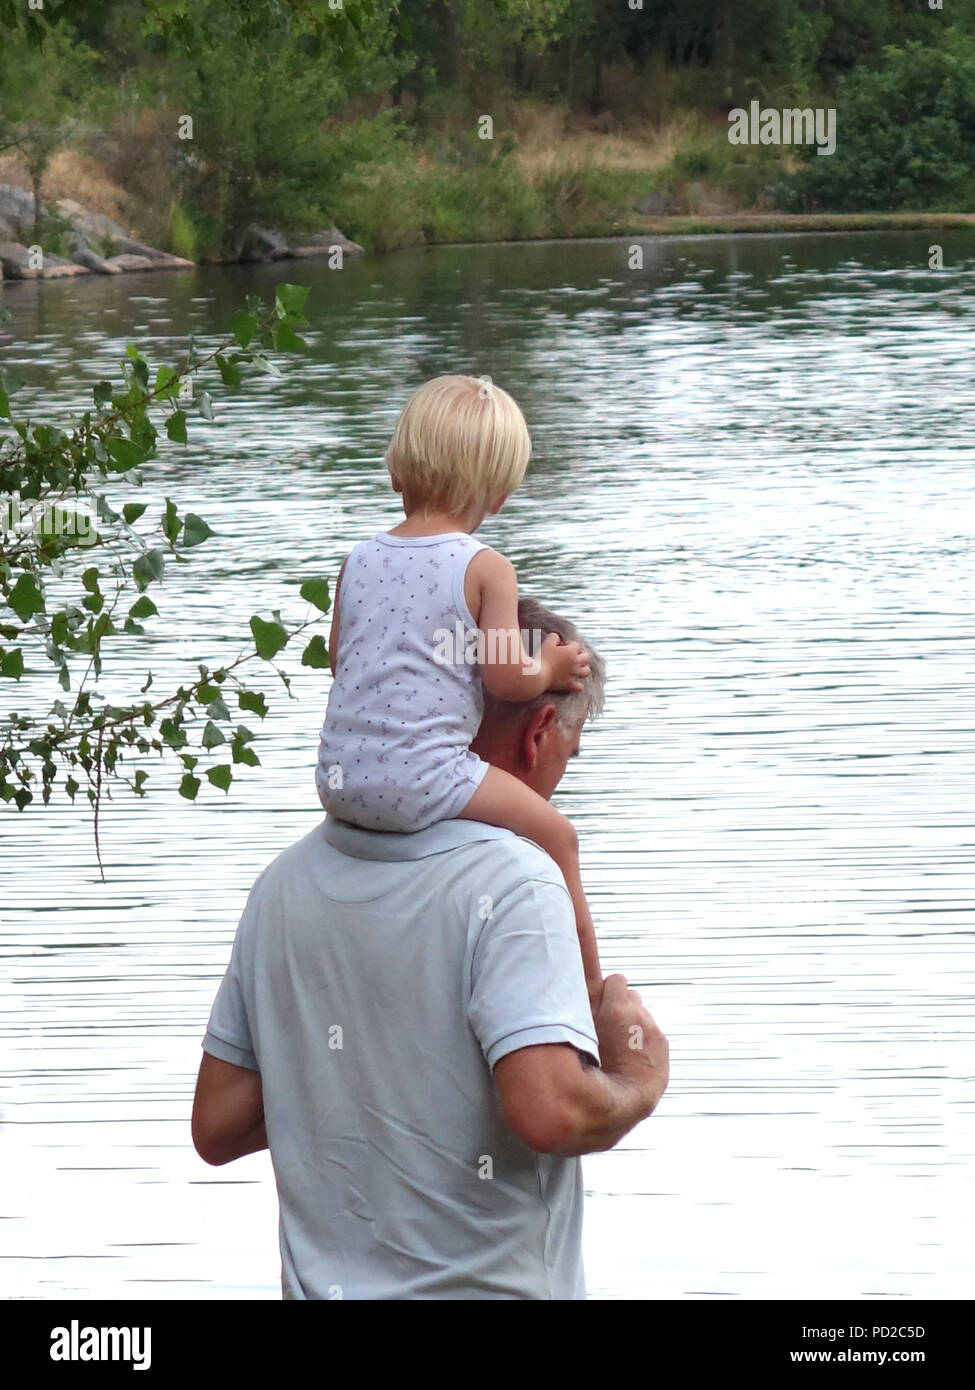 Small child on adult males shoulders walking by a lake - Stock Image